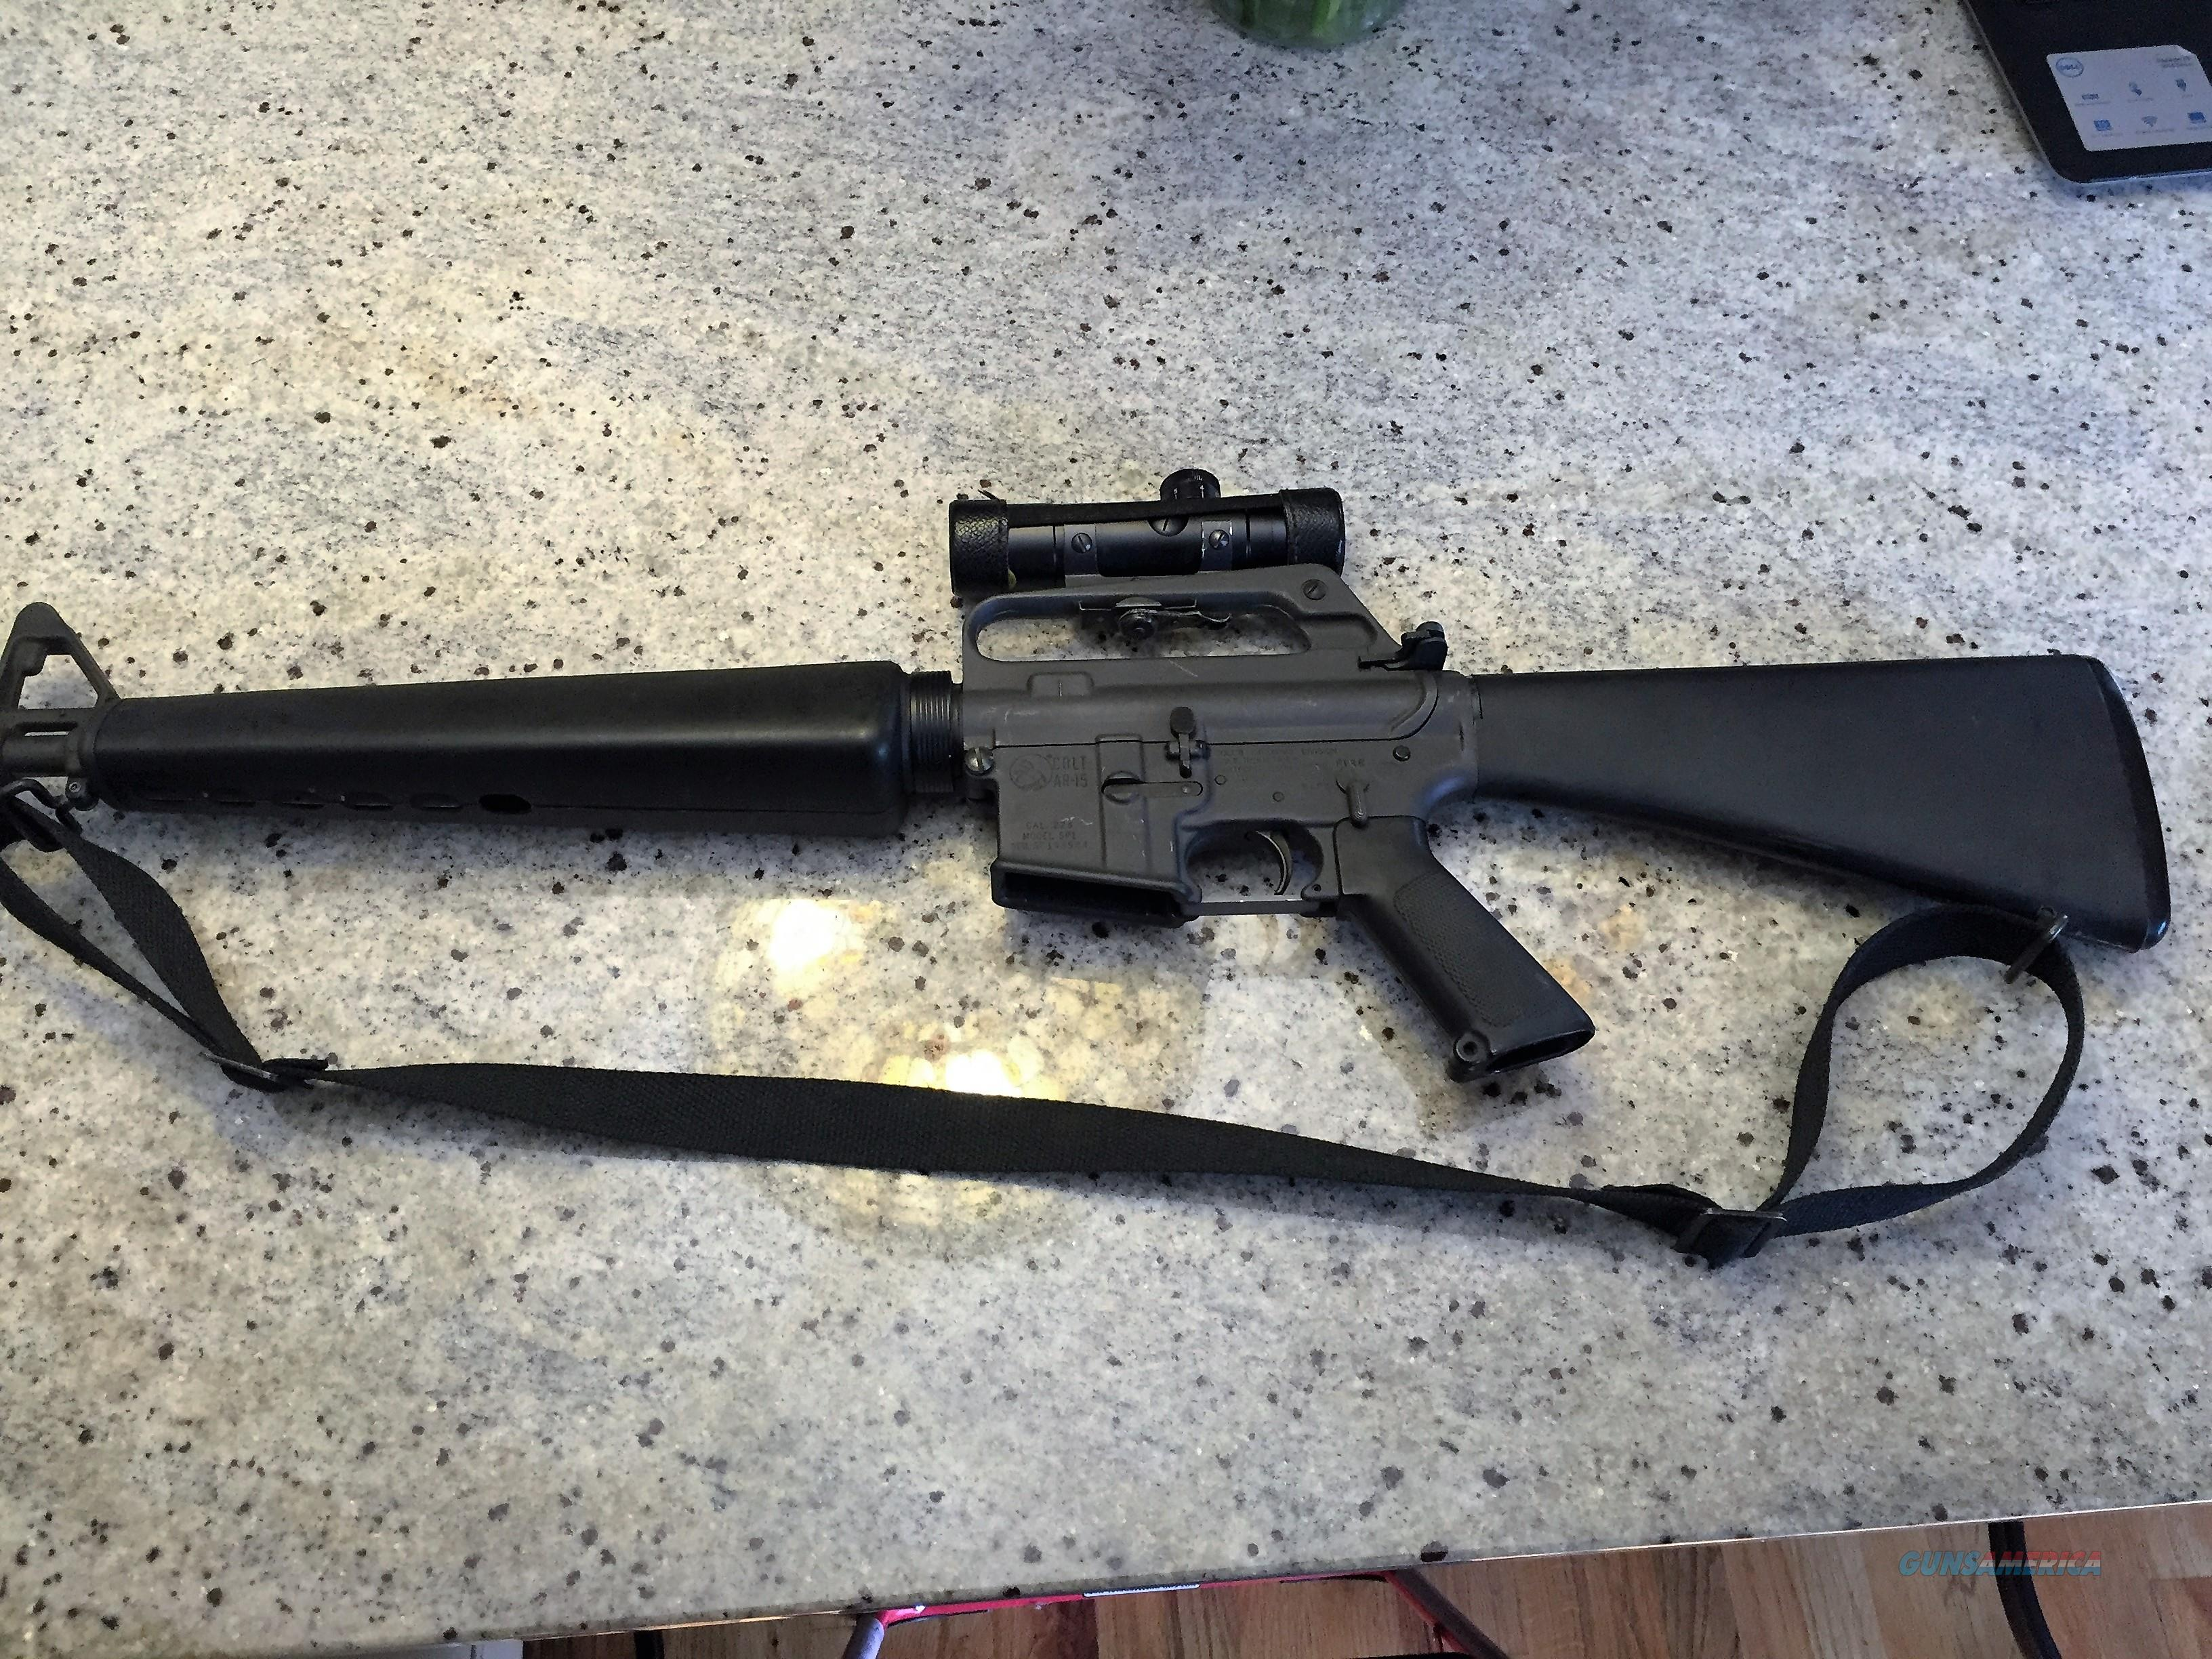 COLT SP 1 5.56 AR 15 with Colt 3x20 scope  Guns > Rifles > AR-15 Rifles - Small Manufacturers > Complete Rifle